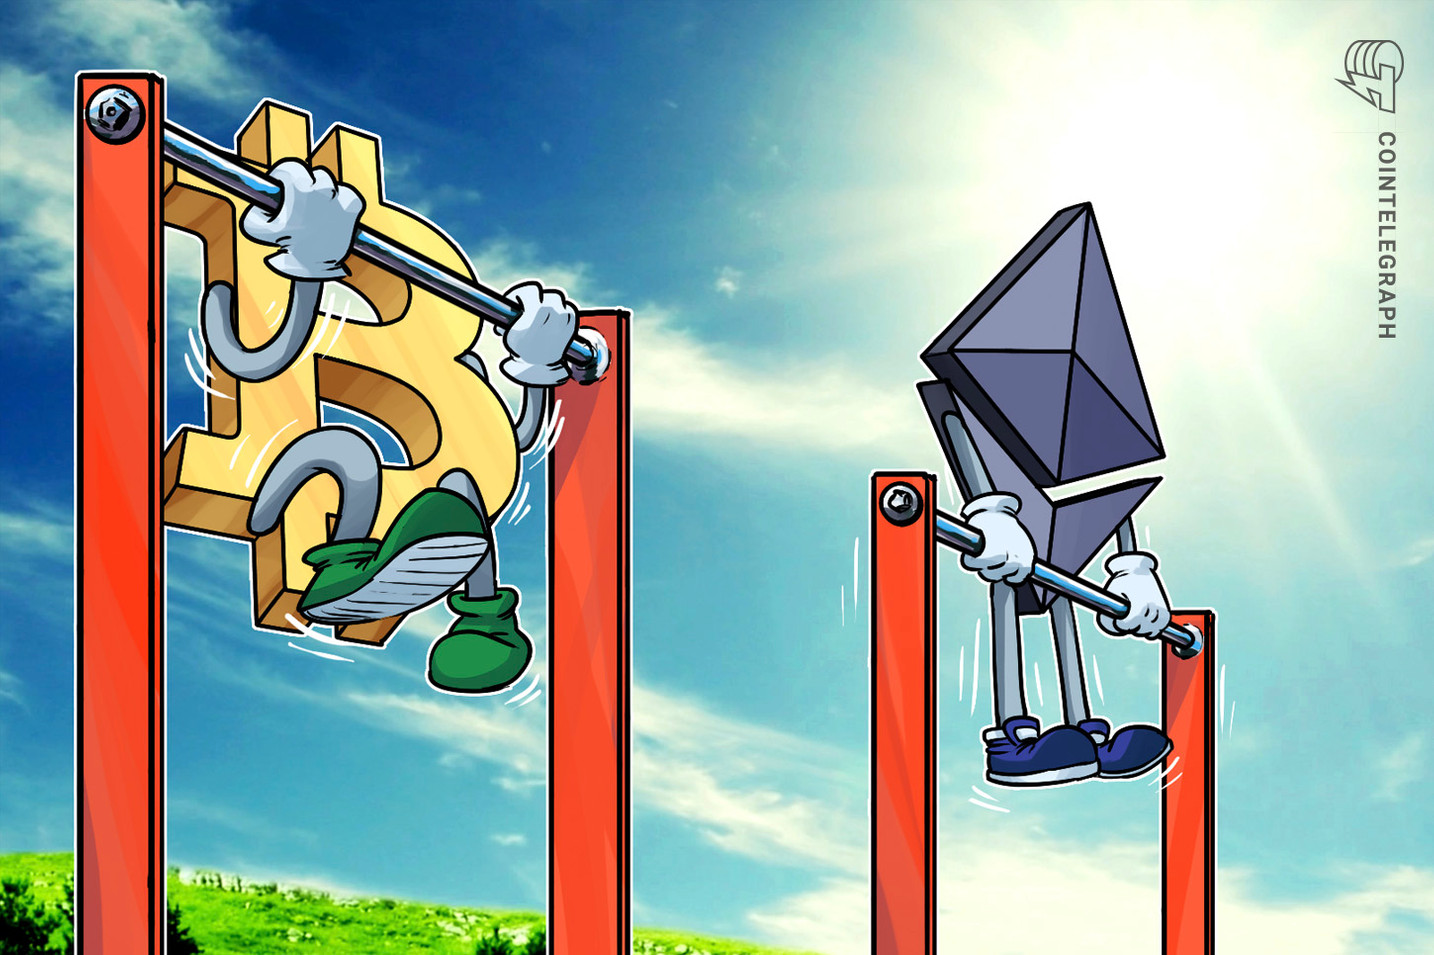 Ethereum Topped Bitcoin in Network Daily Fees Over Weekend